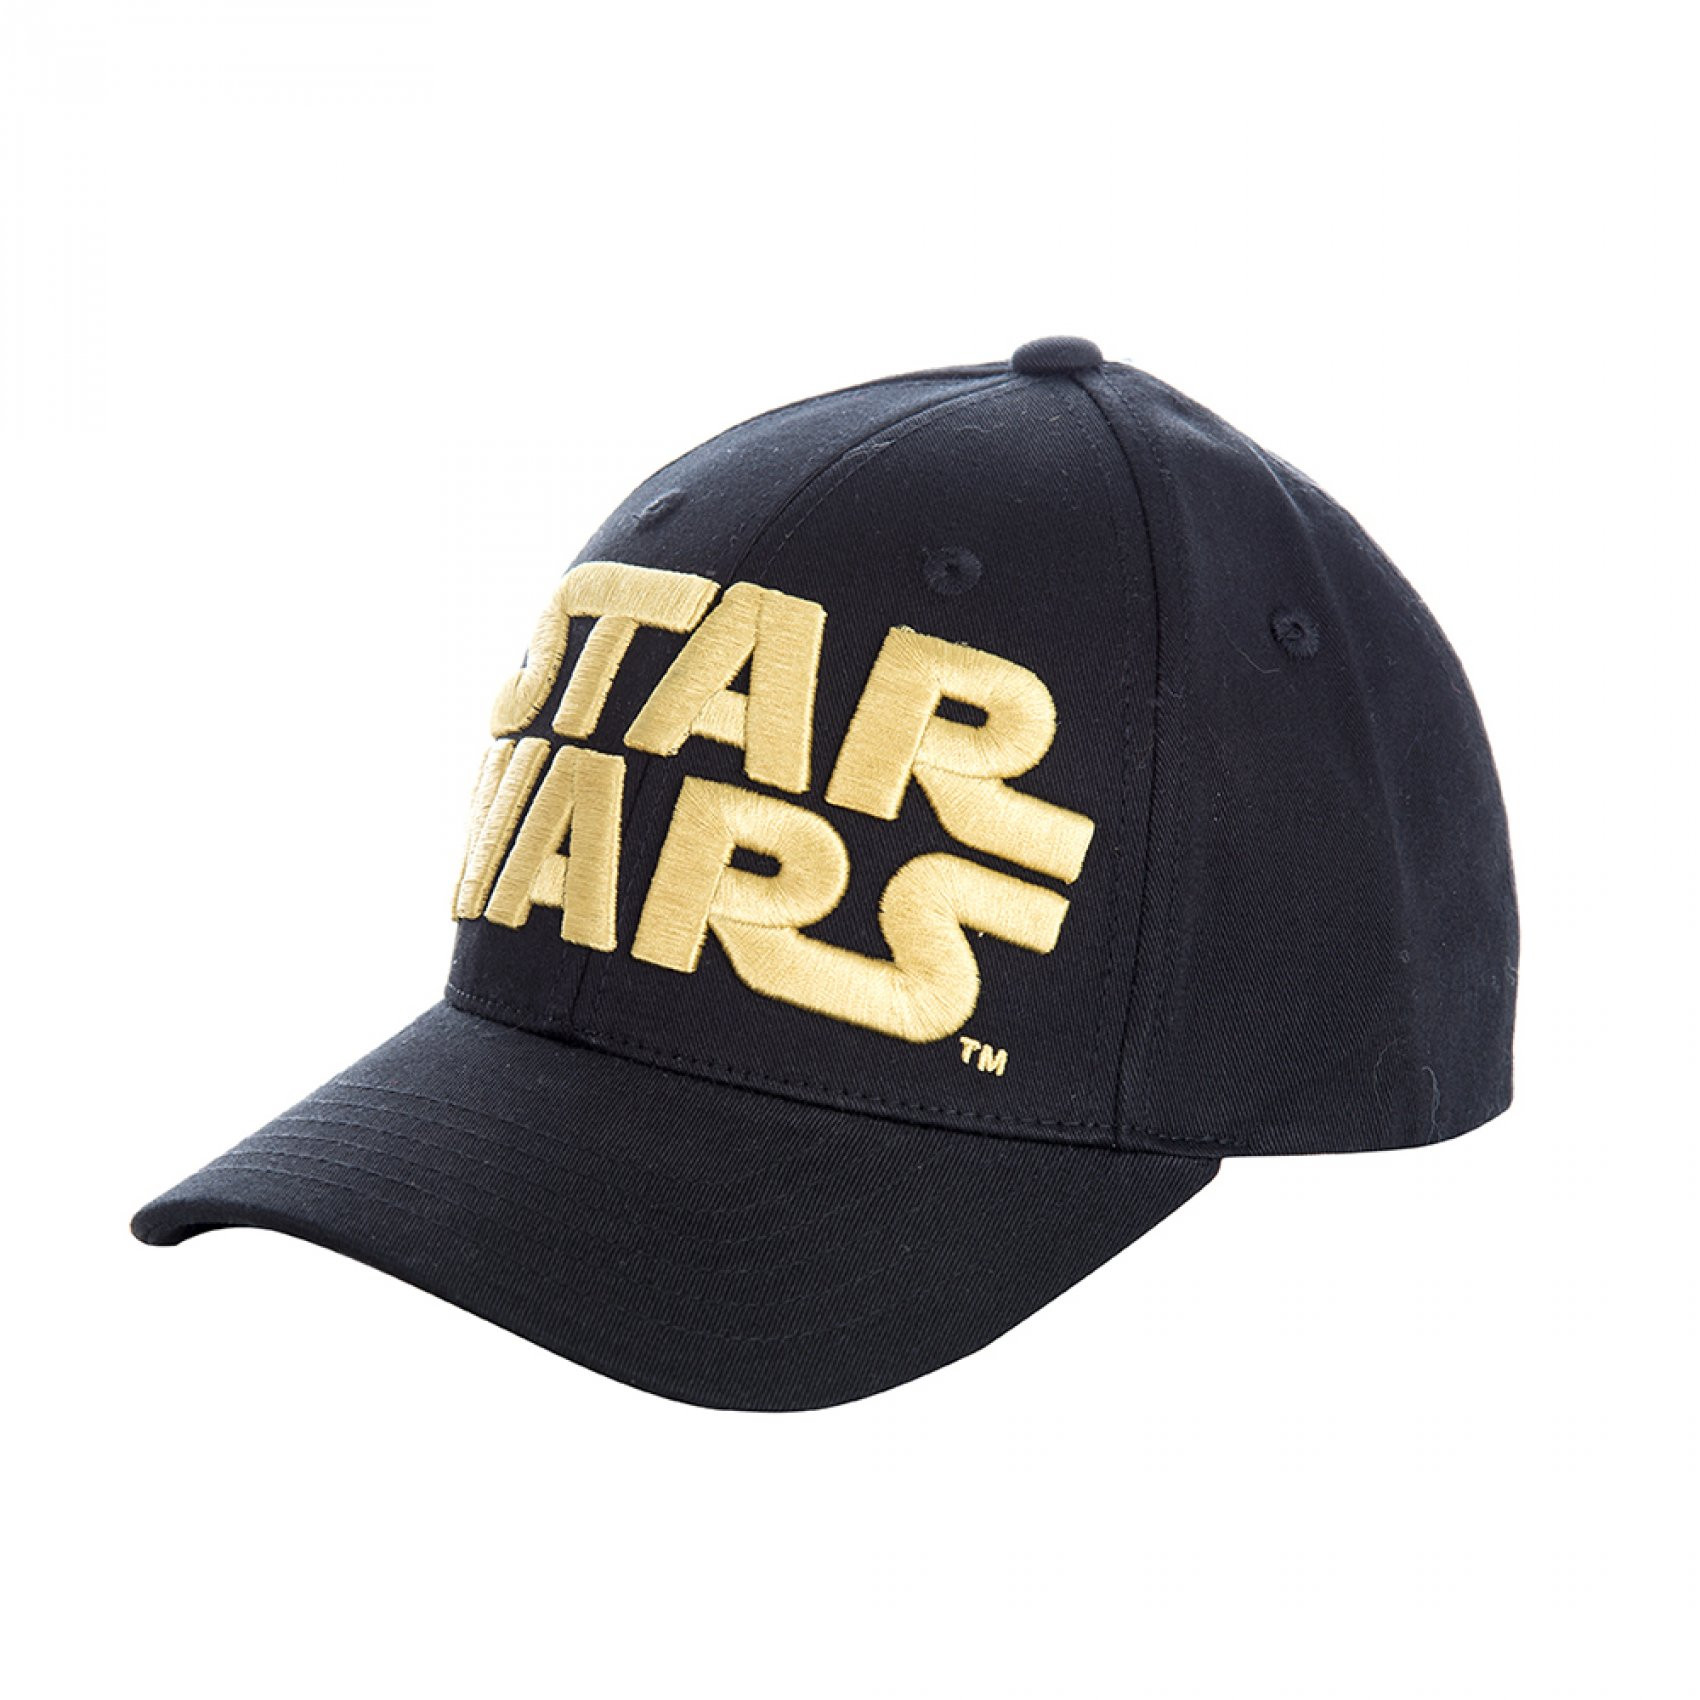 Casquette baseball snapback homme broderie or star (photo)